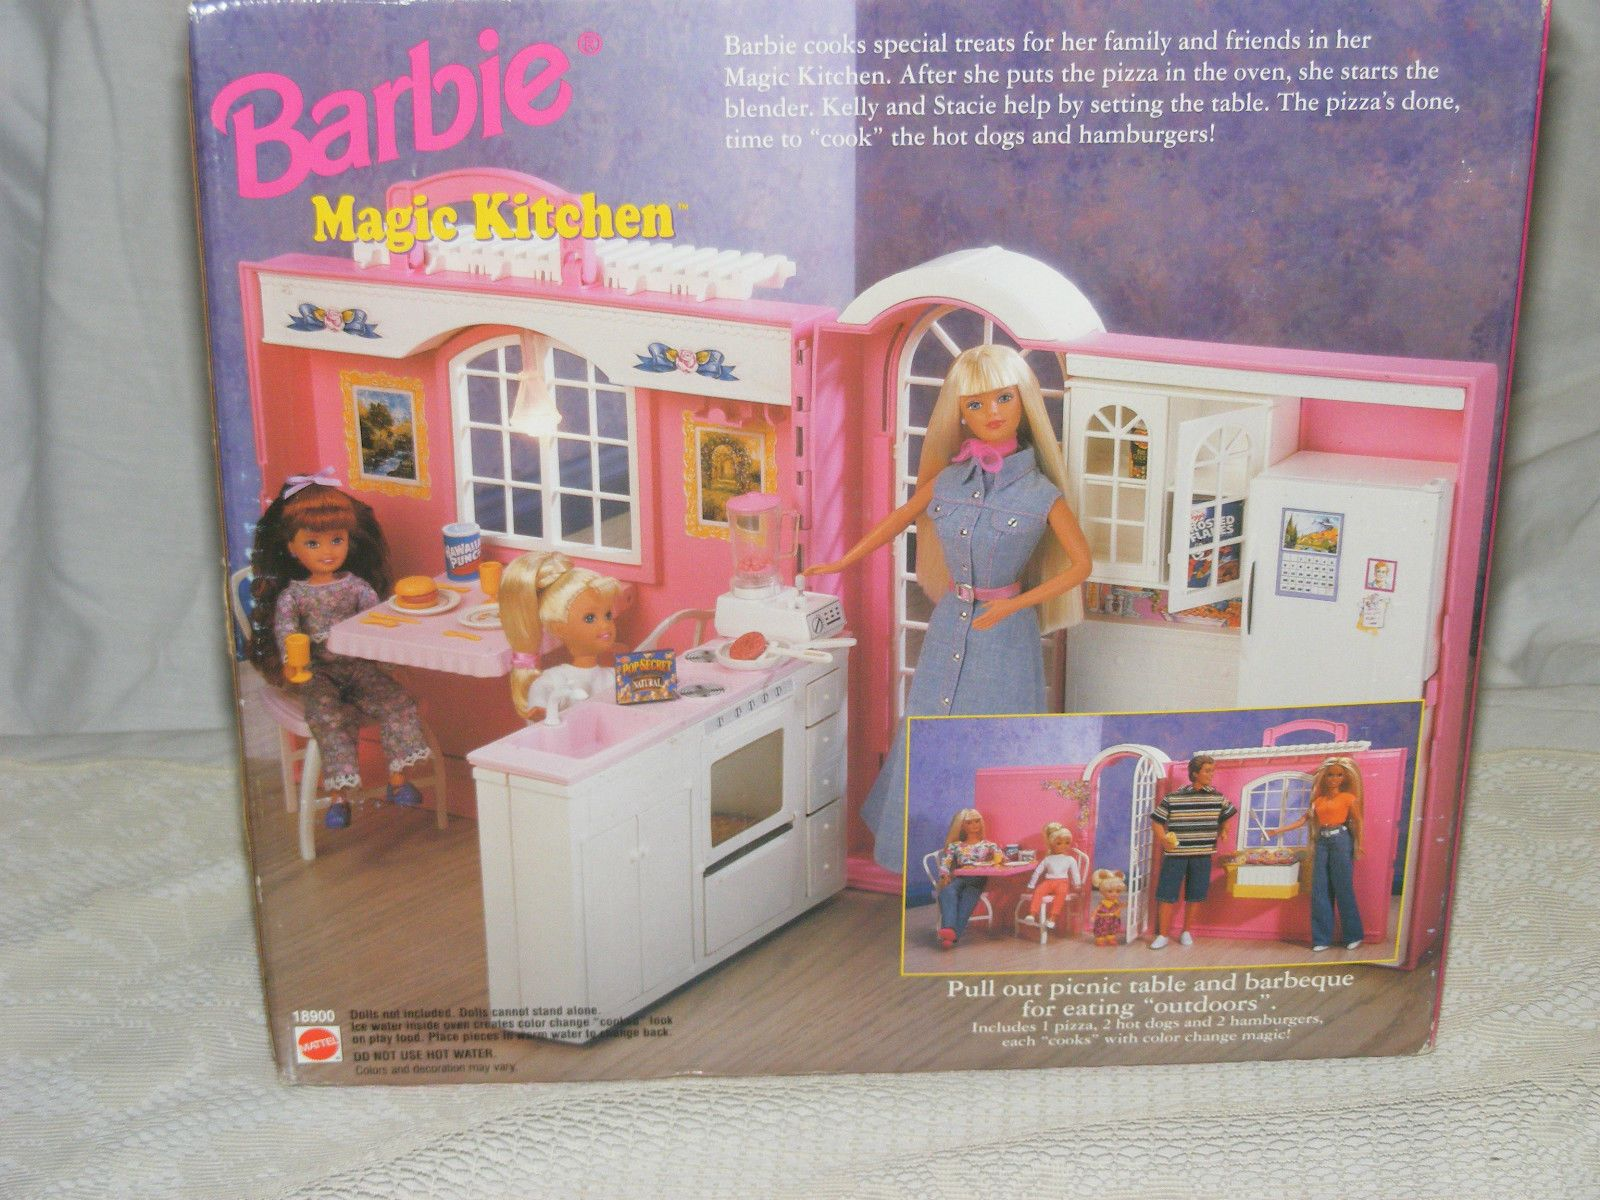 1998 Barbie Magic Kitchen Playset - Picnic Table and Barb-Q on outside wall